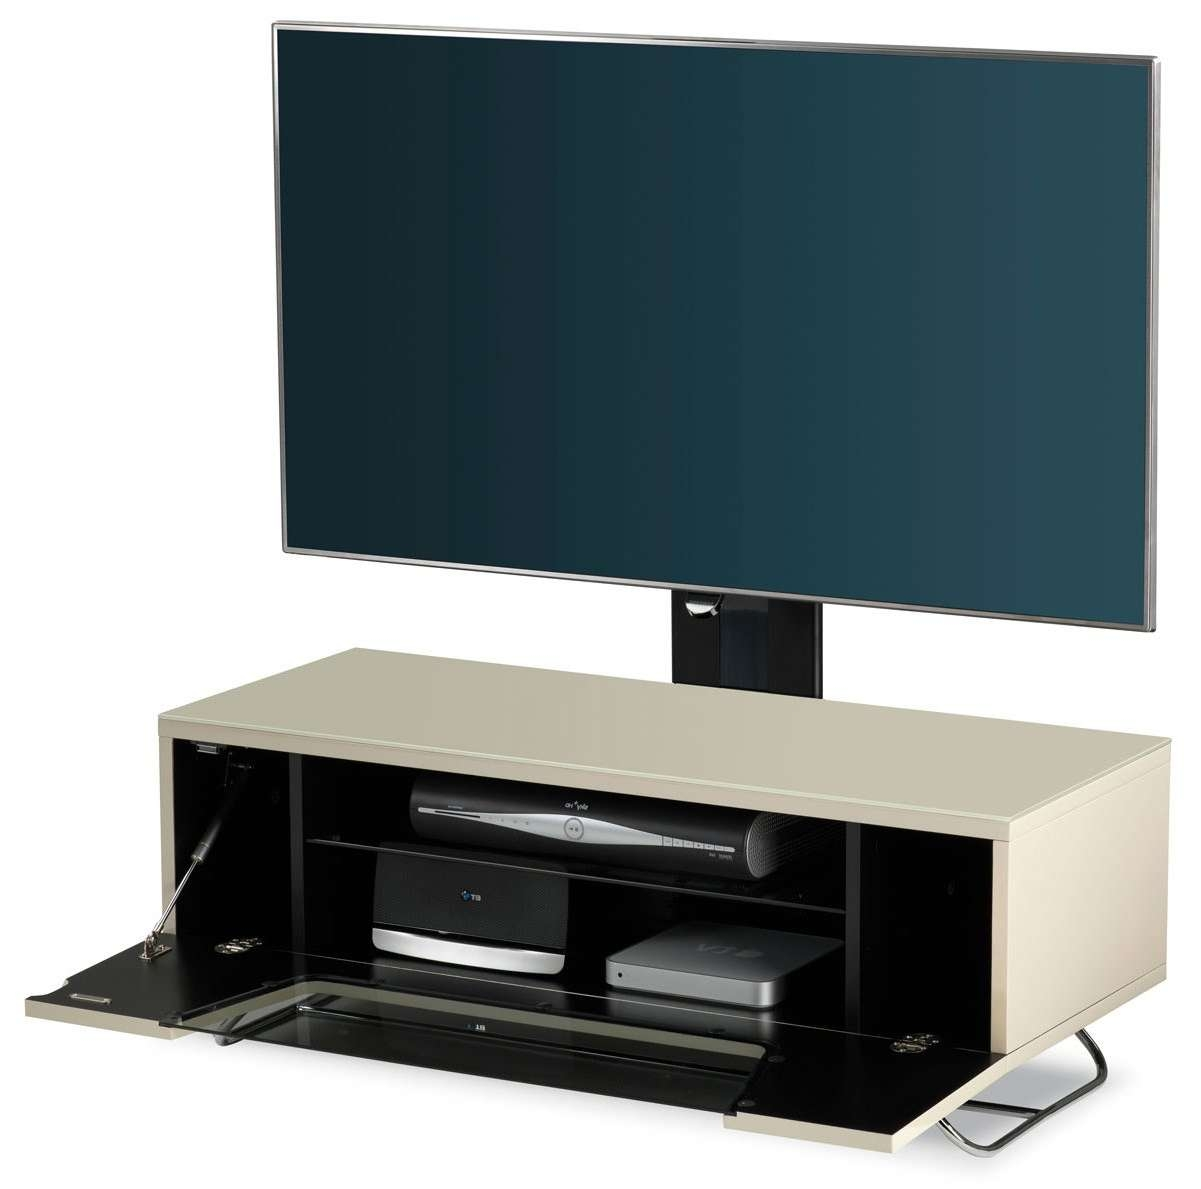 Alphason Chromium Ivory Cantilever Tv Stand Regarding Alphason Tv Cabinets (View 7 of 20)